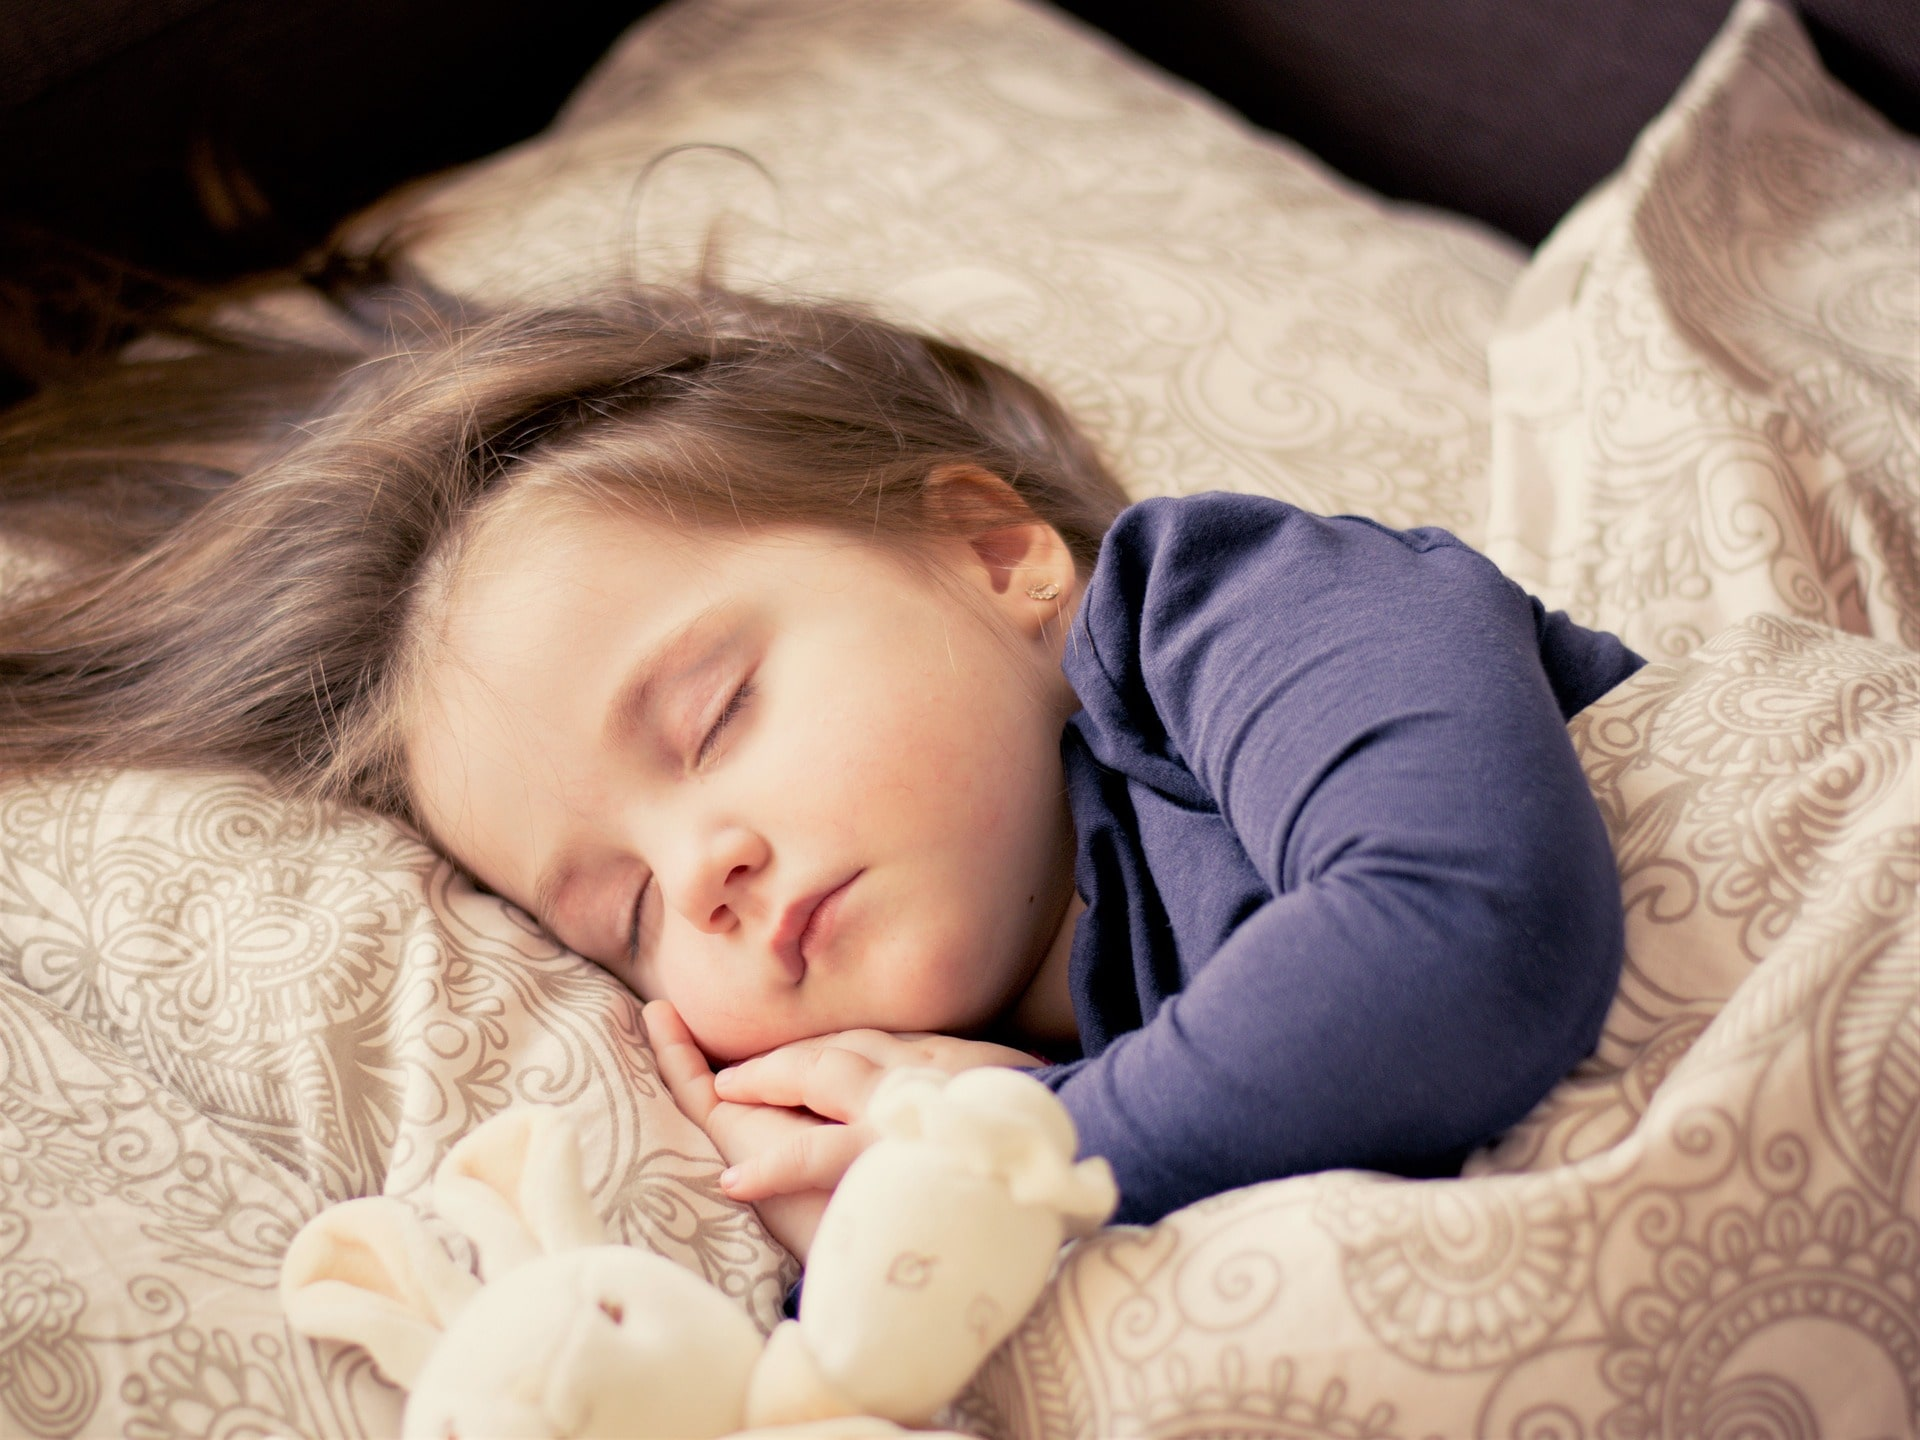 toddler sleeping peacefully